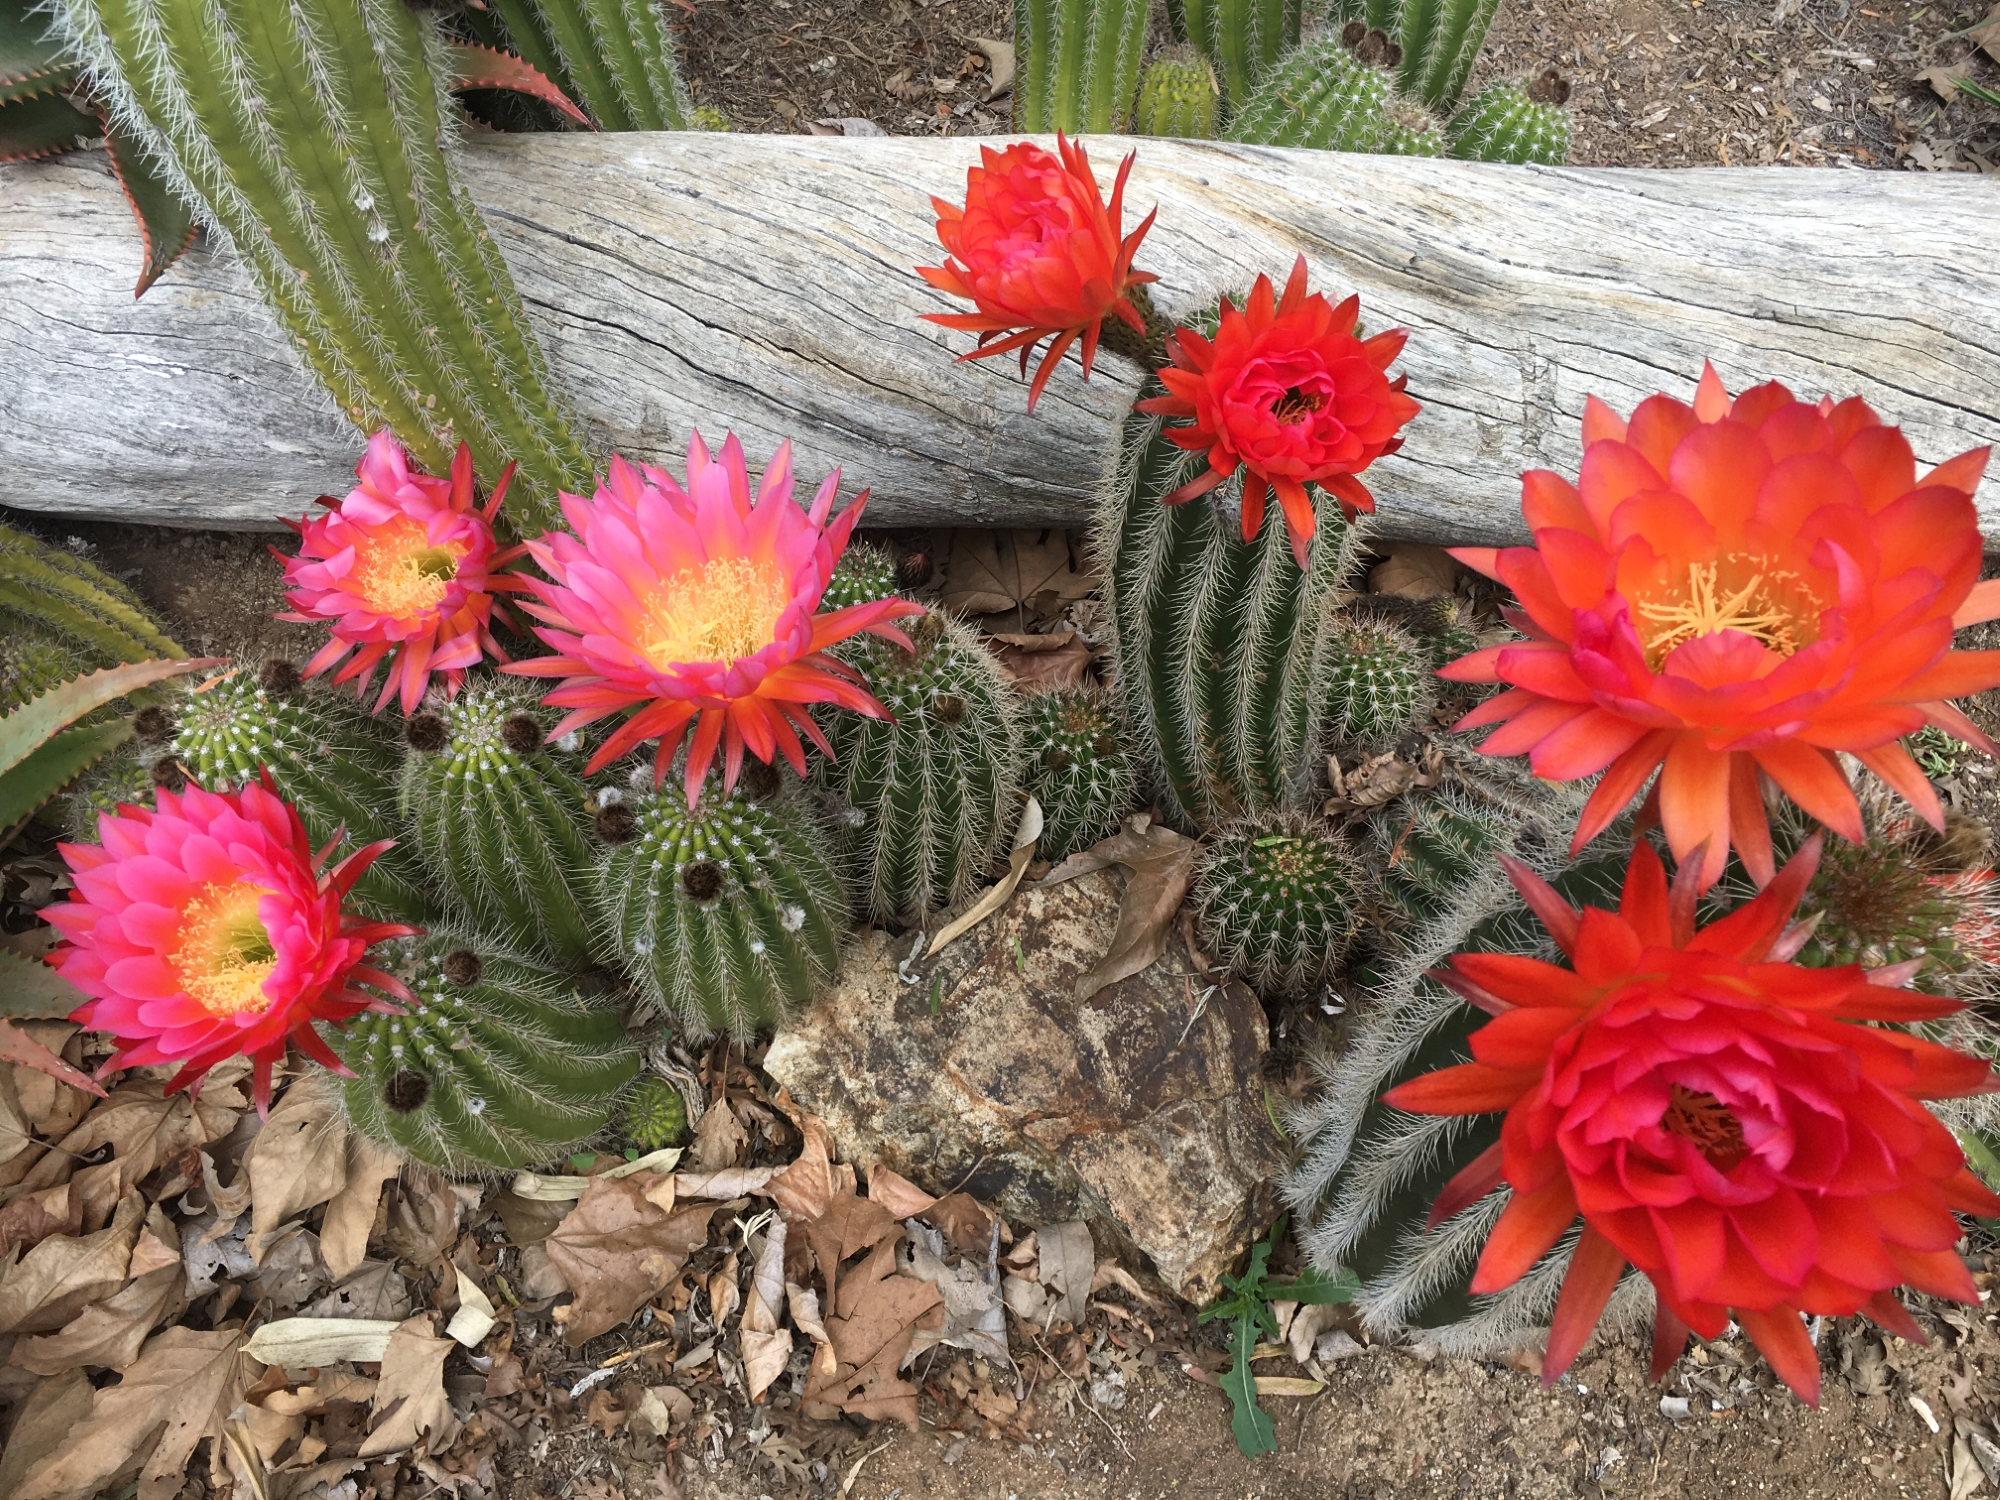 Cactus low to the ground with blooming orange flowers